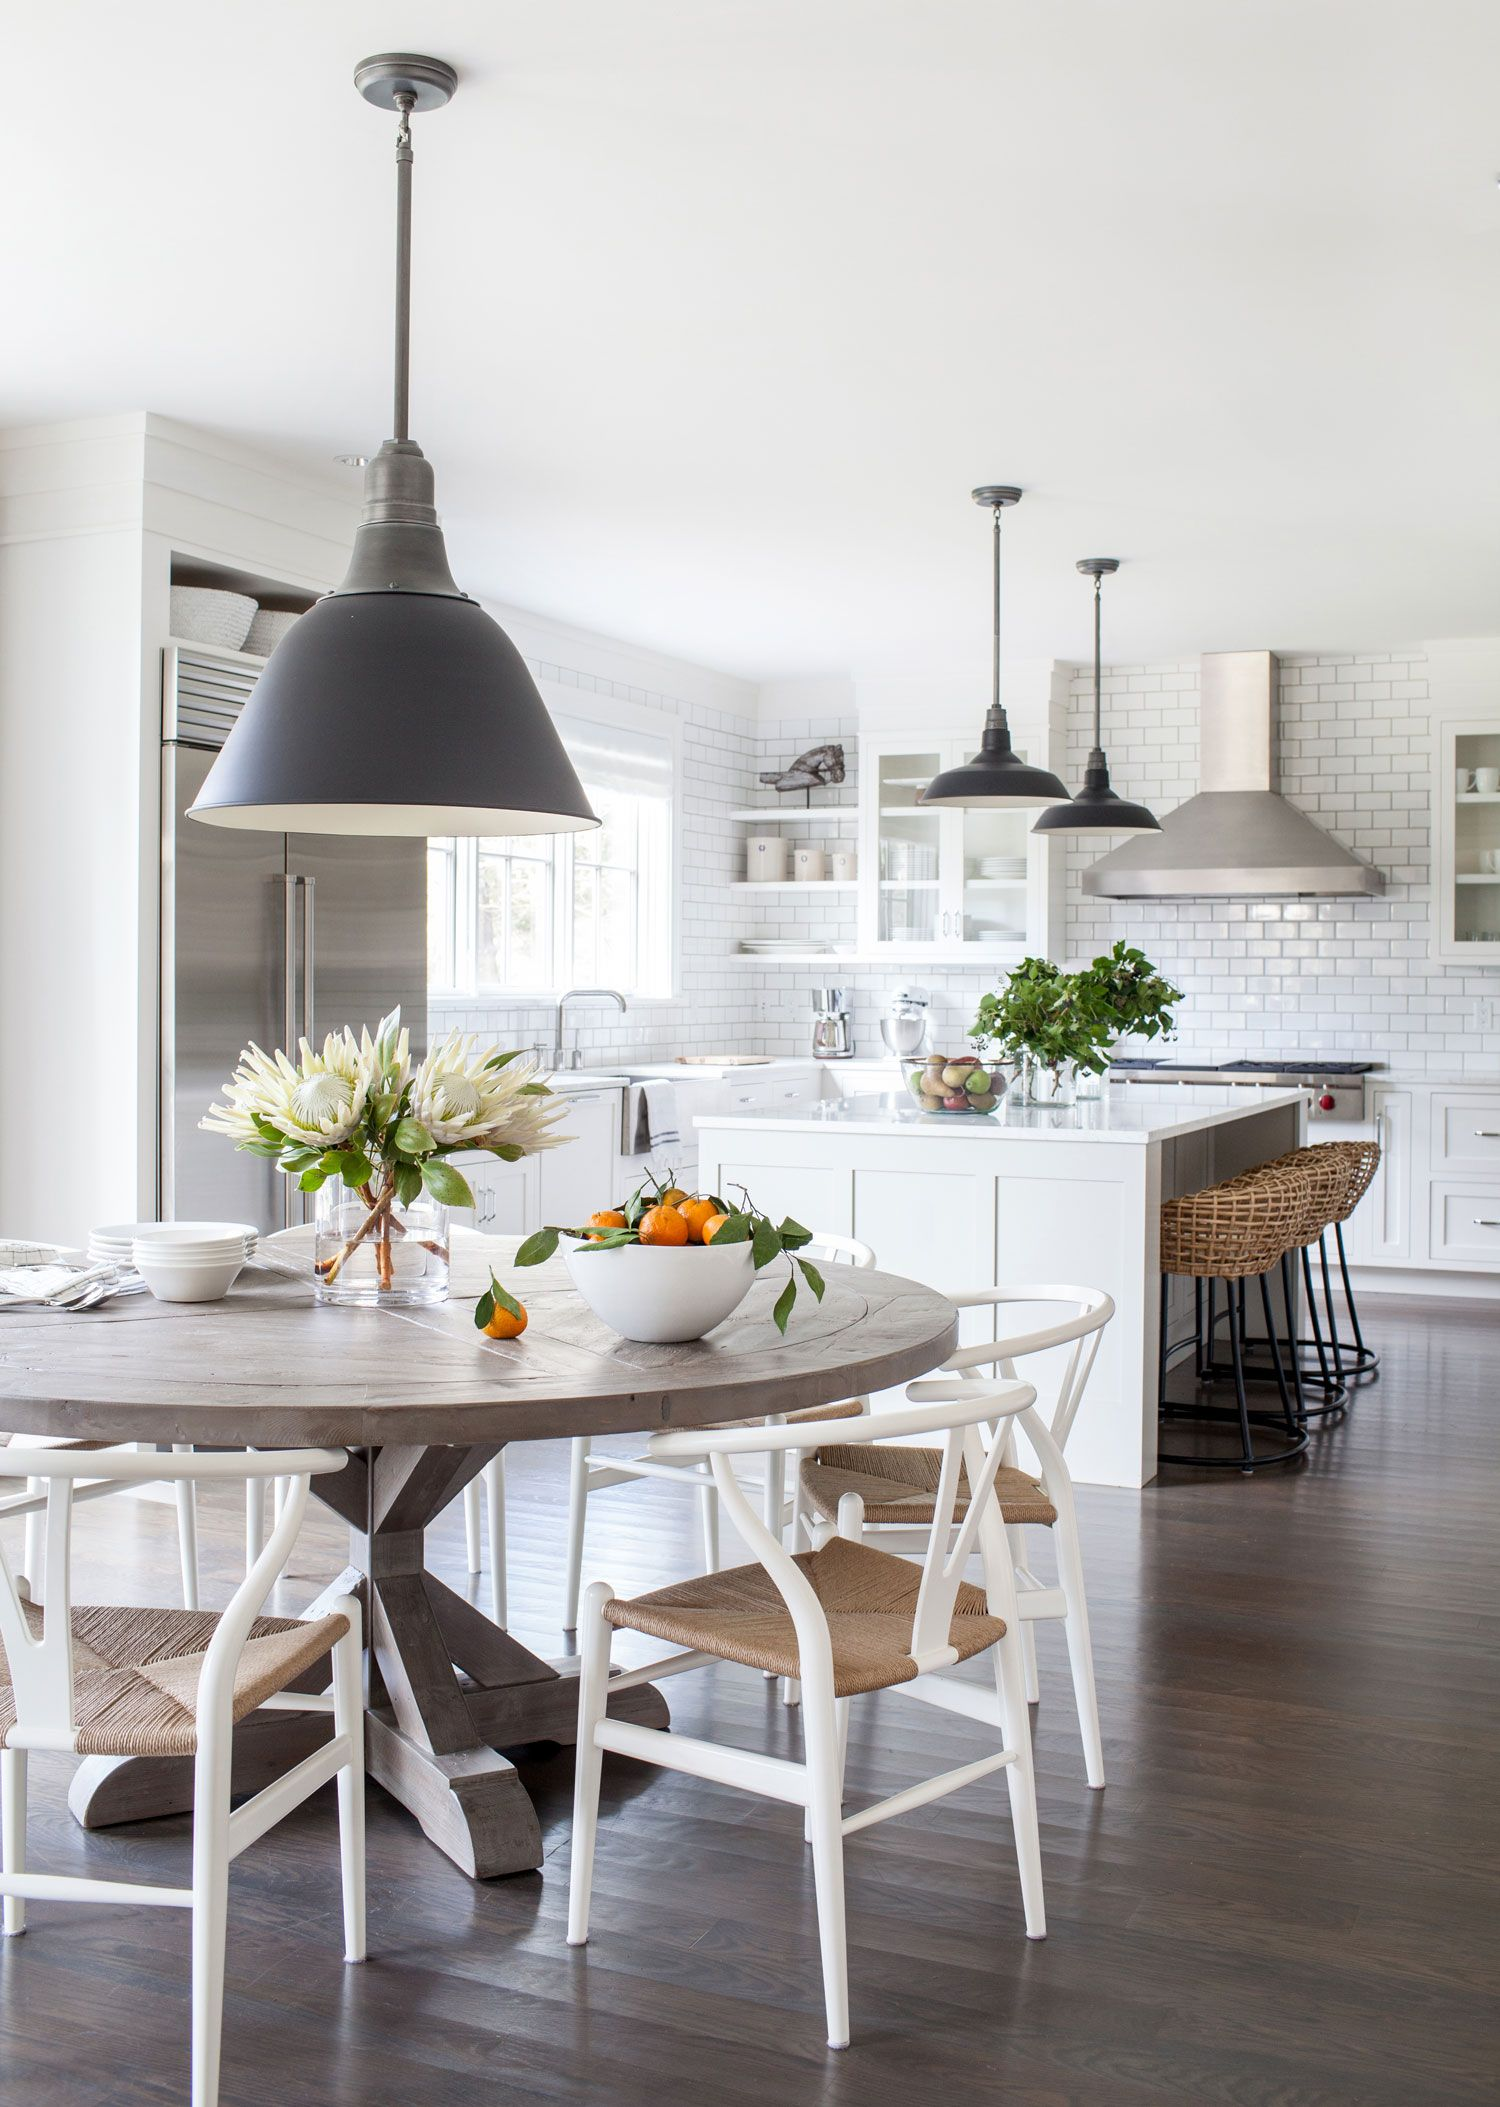 Farm House Kitchen Table Design Westport Modern Farmhouse Kitchens Pinterest